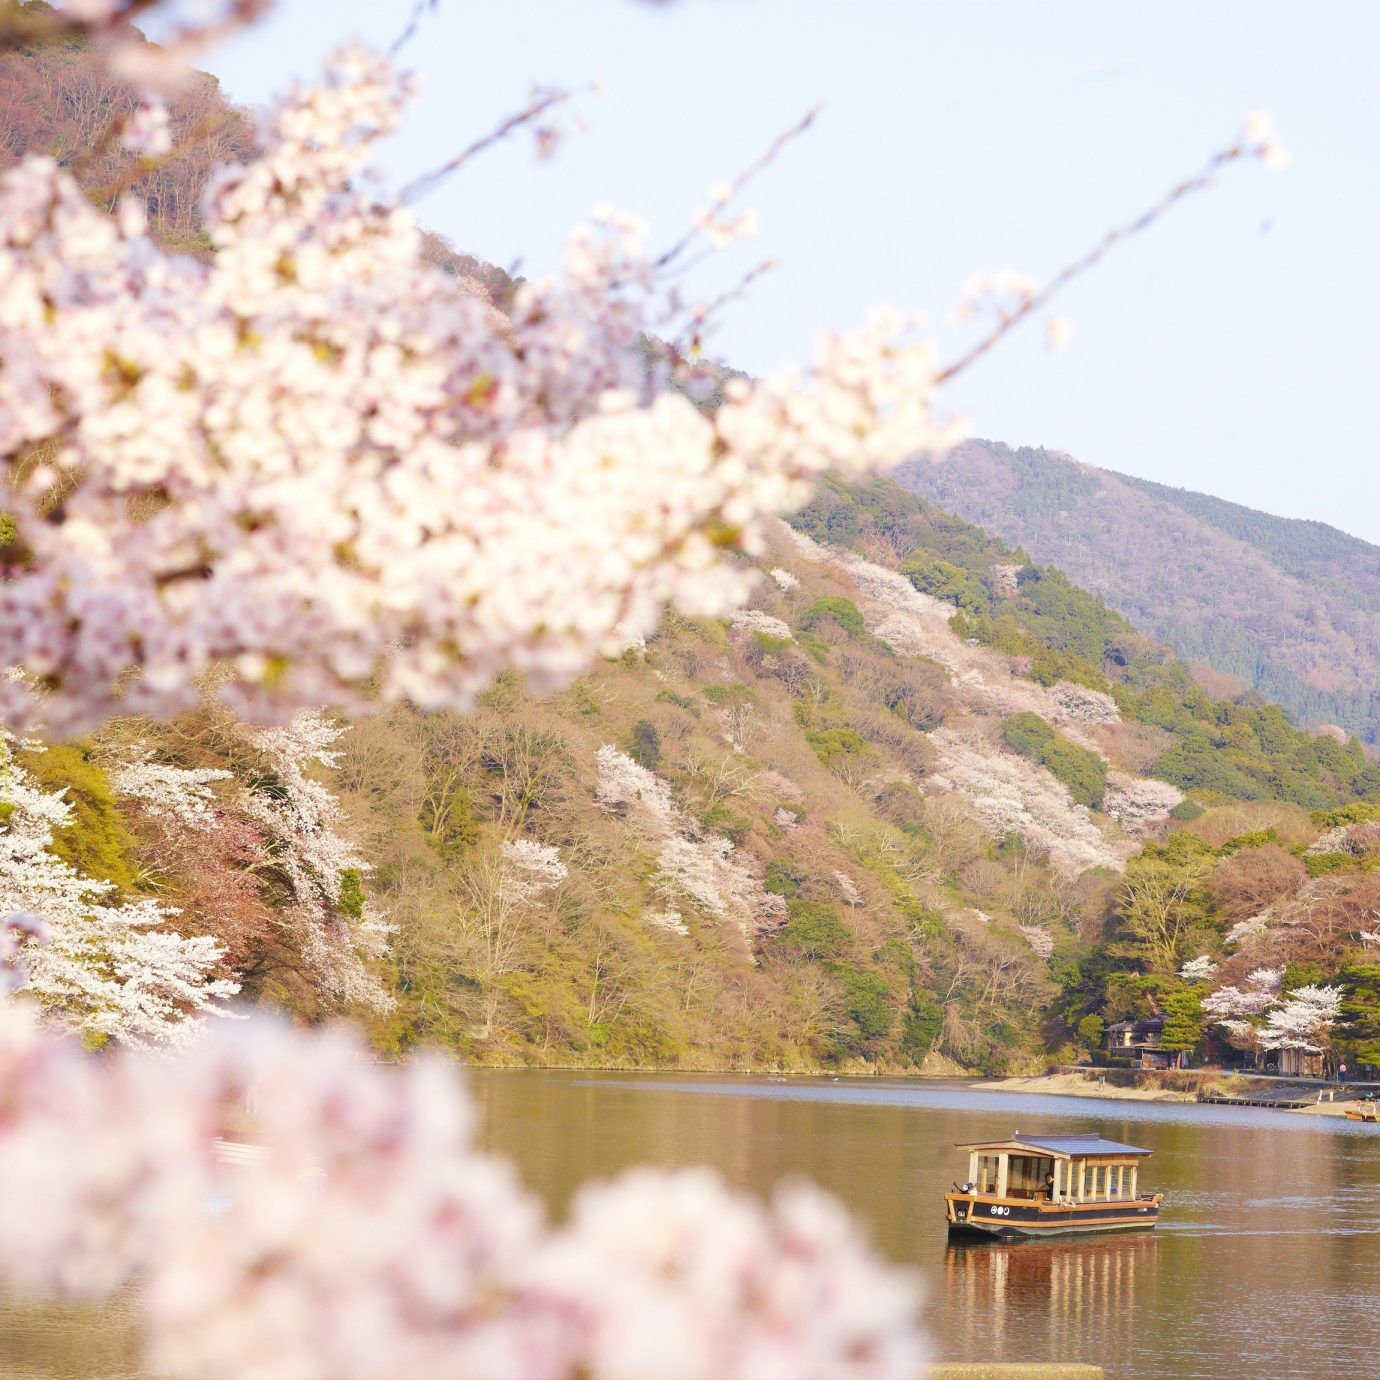 Beauty Health + Wellness Japan Kyoto San Francisco Travel Tips flower plant blossom cherry blossom spring flora tree sky